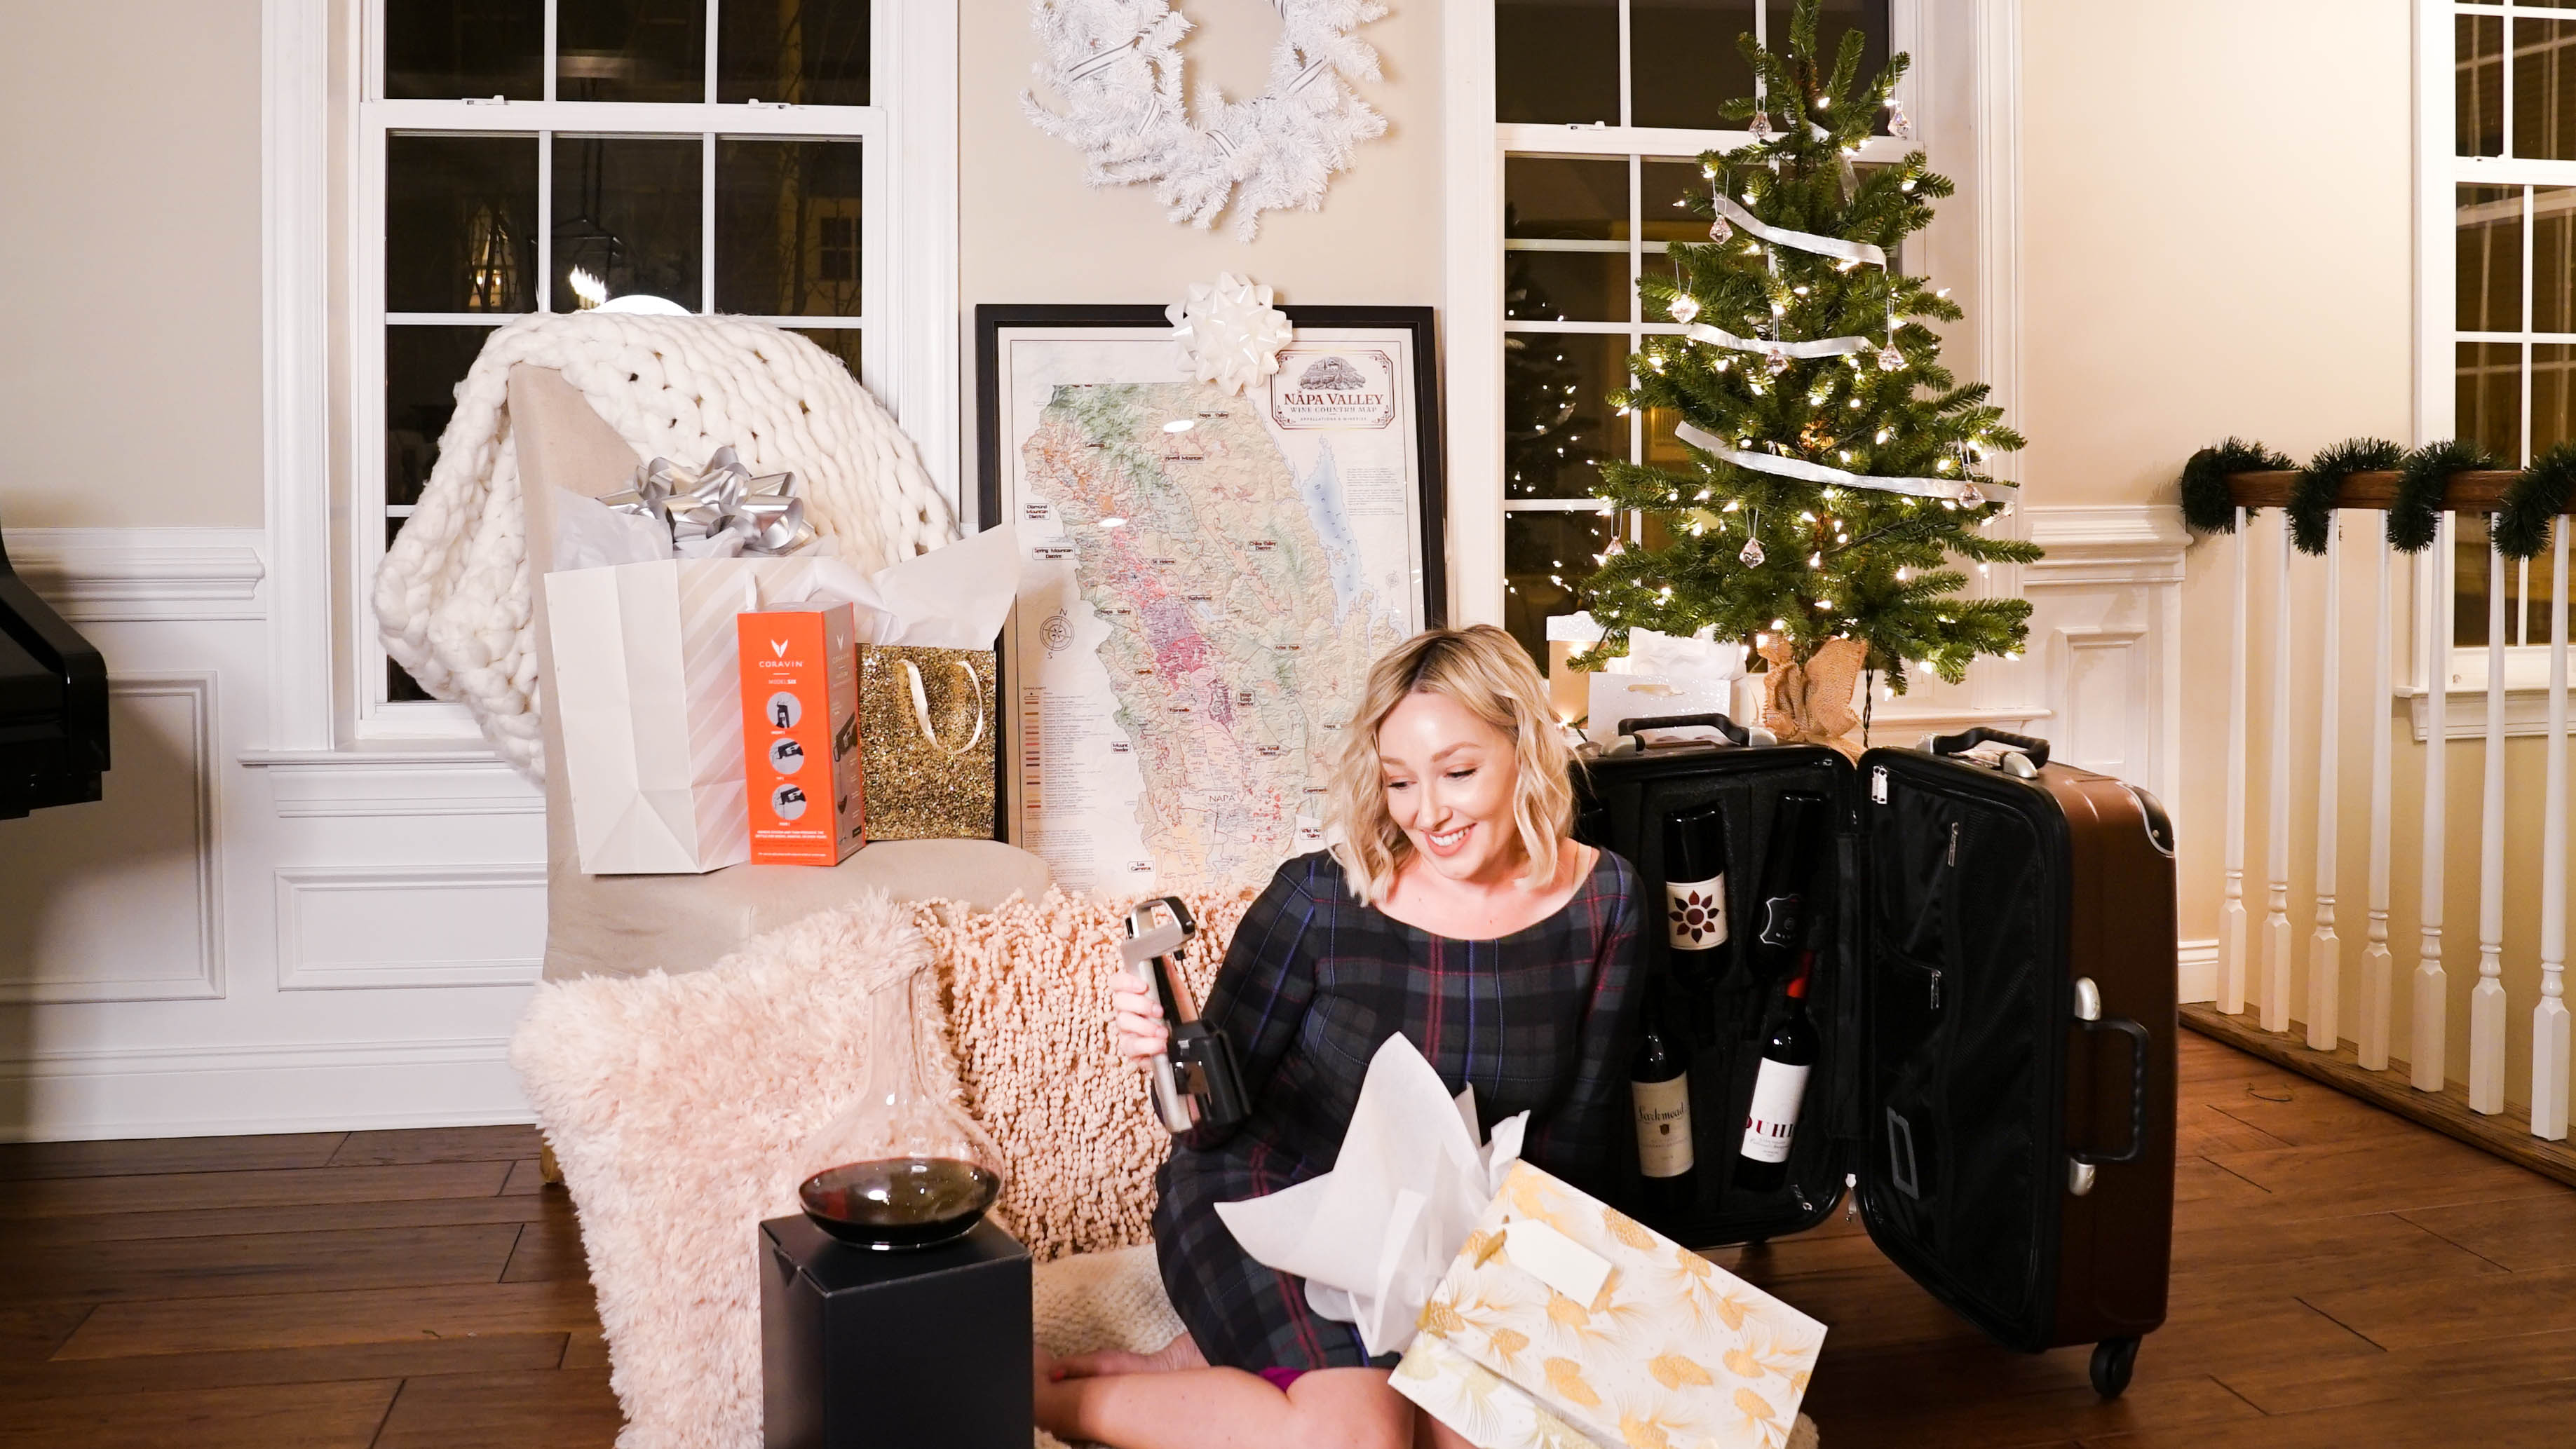 Amanda gift guide for wine geeks